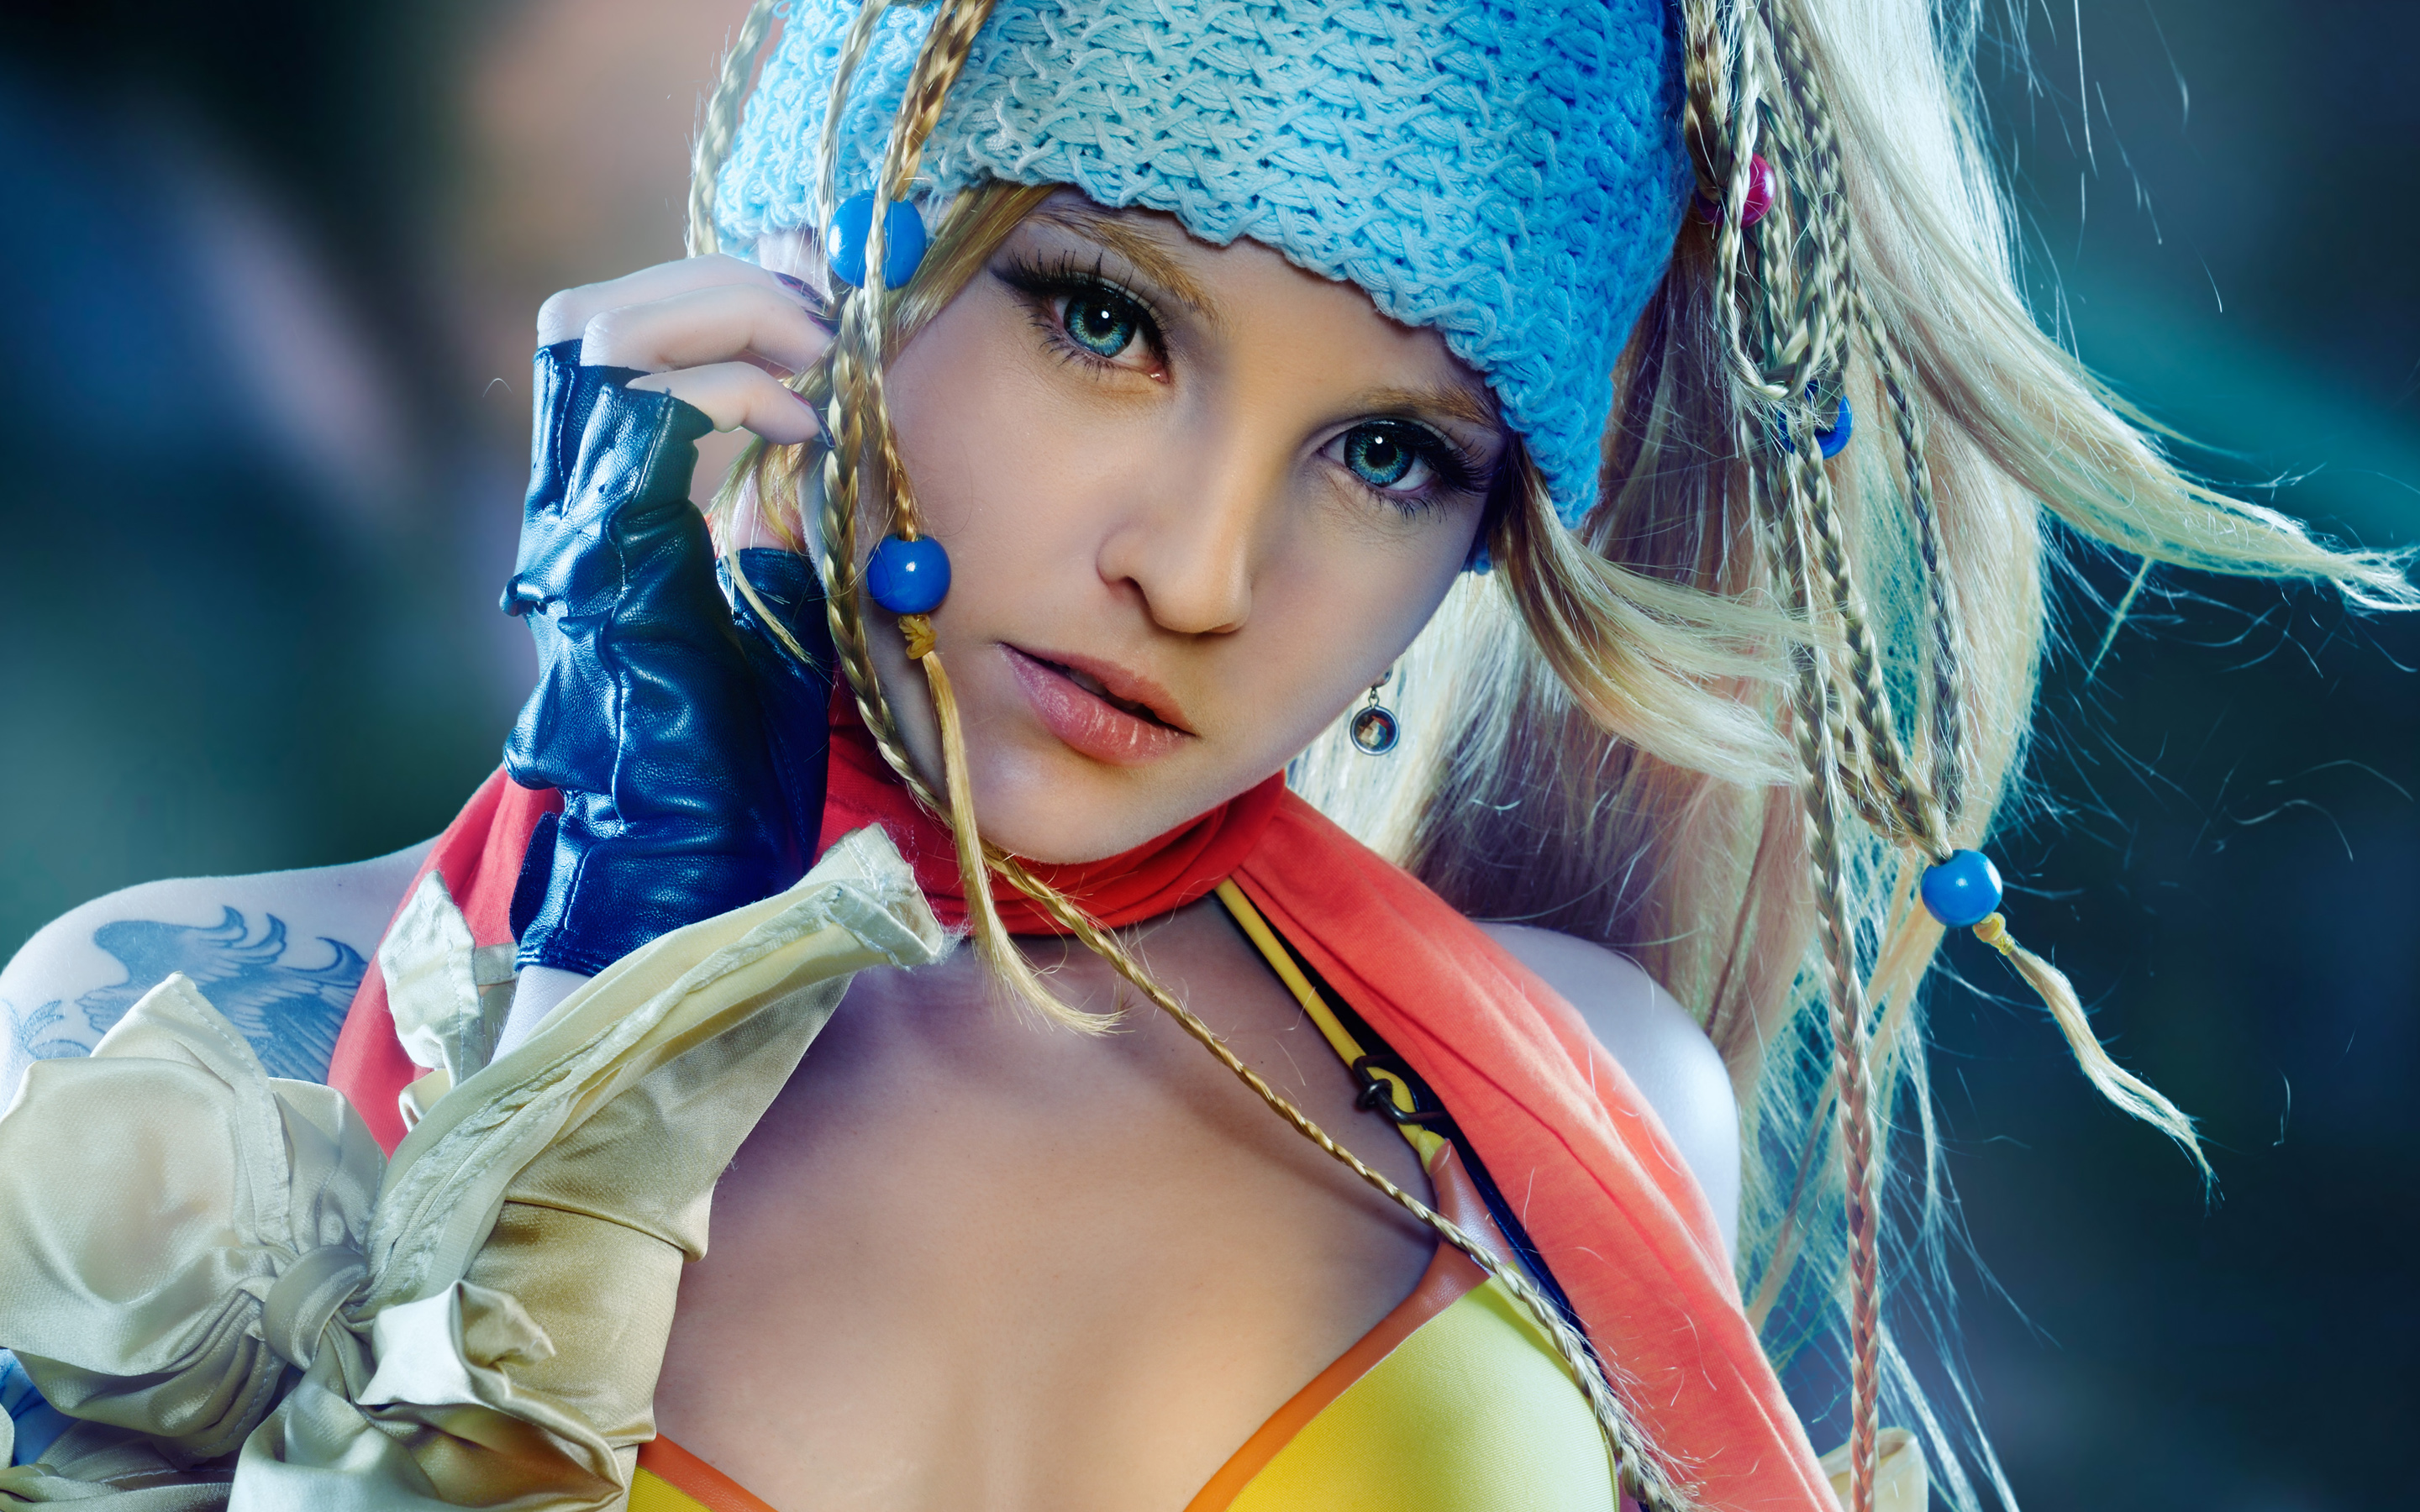 Rikku in Final Fantasy Wallpapers HD Wallpapers 2880x1800